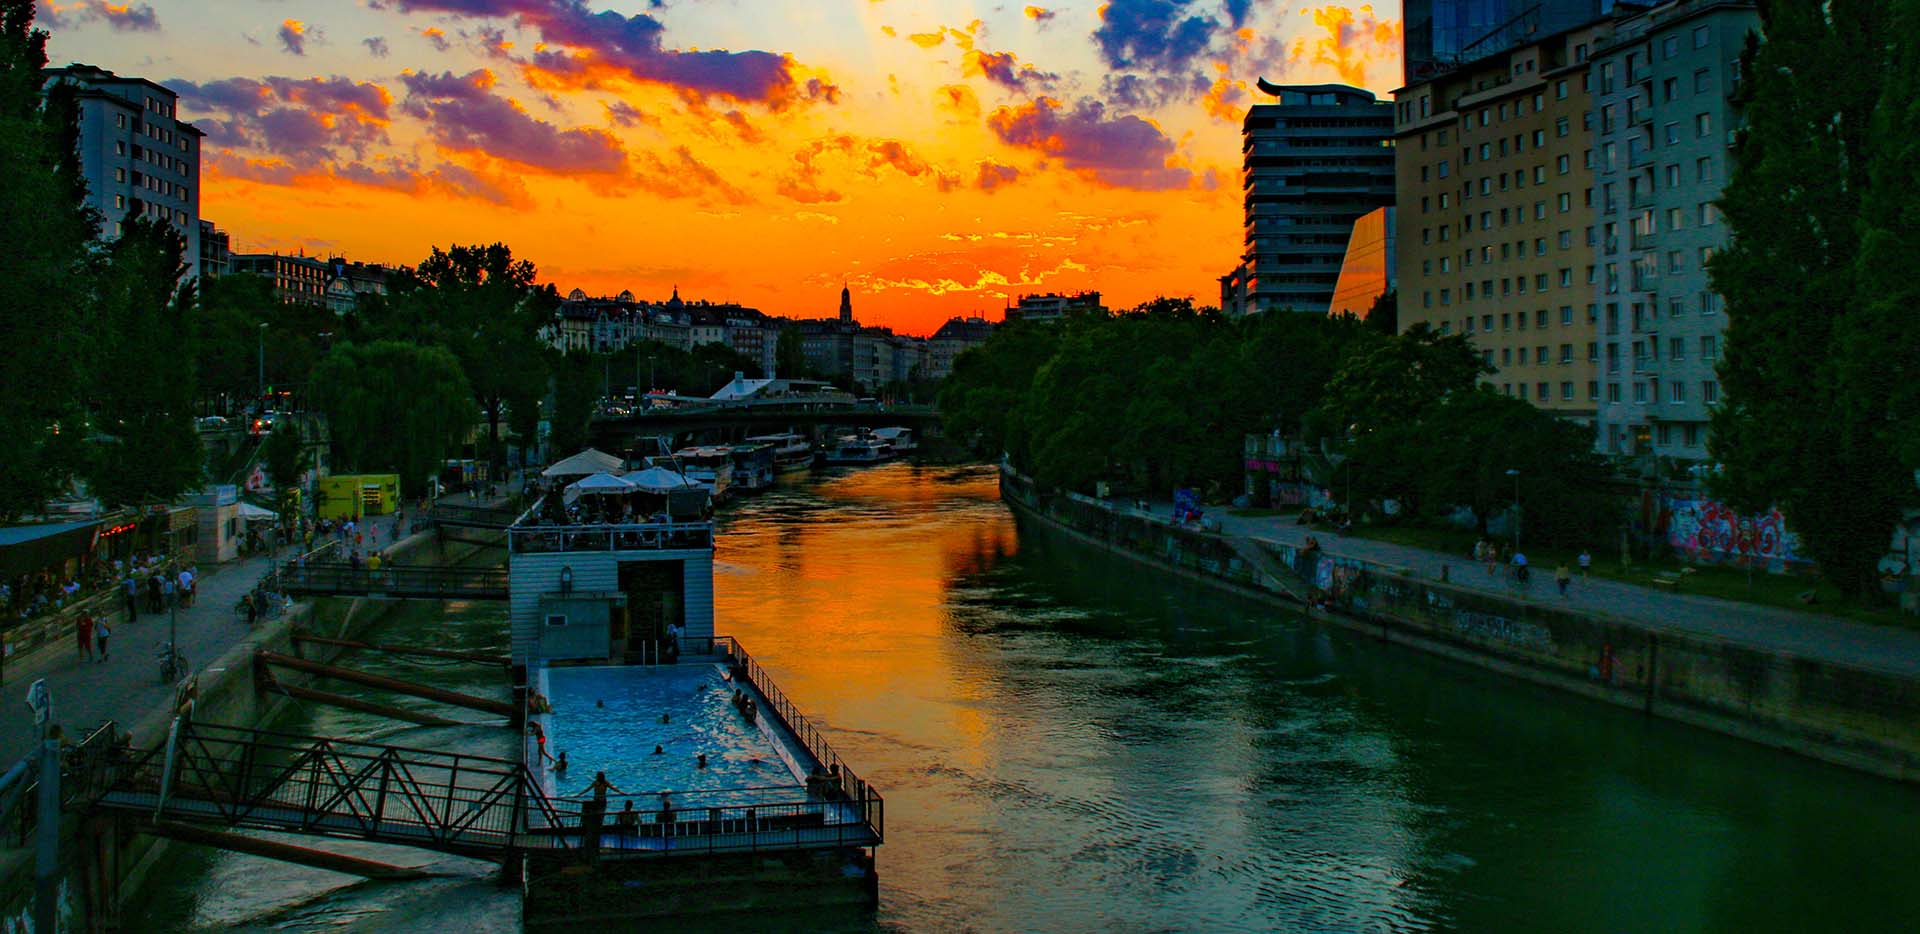 Sunset over Danube Canal